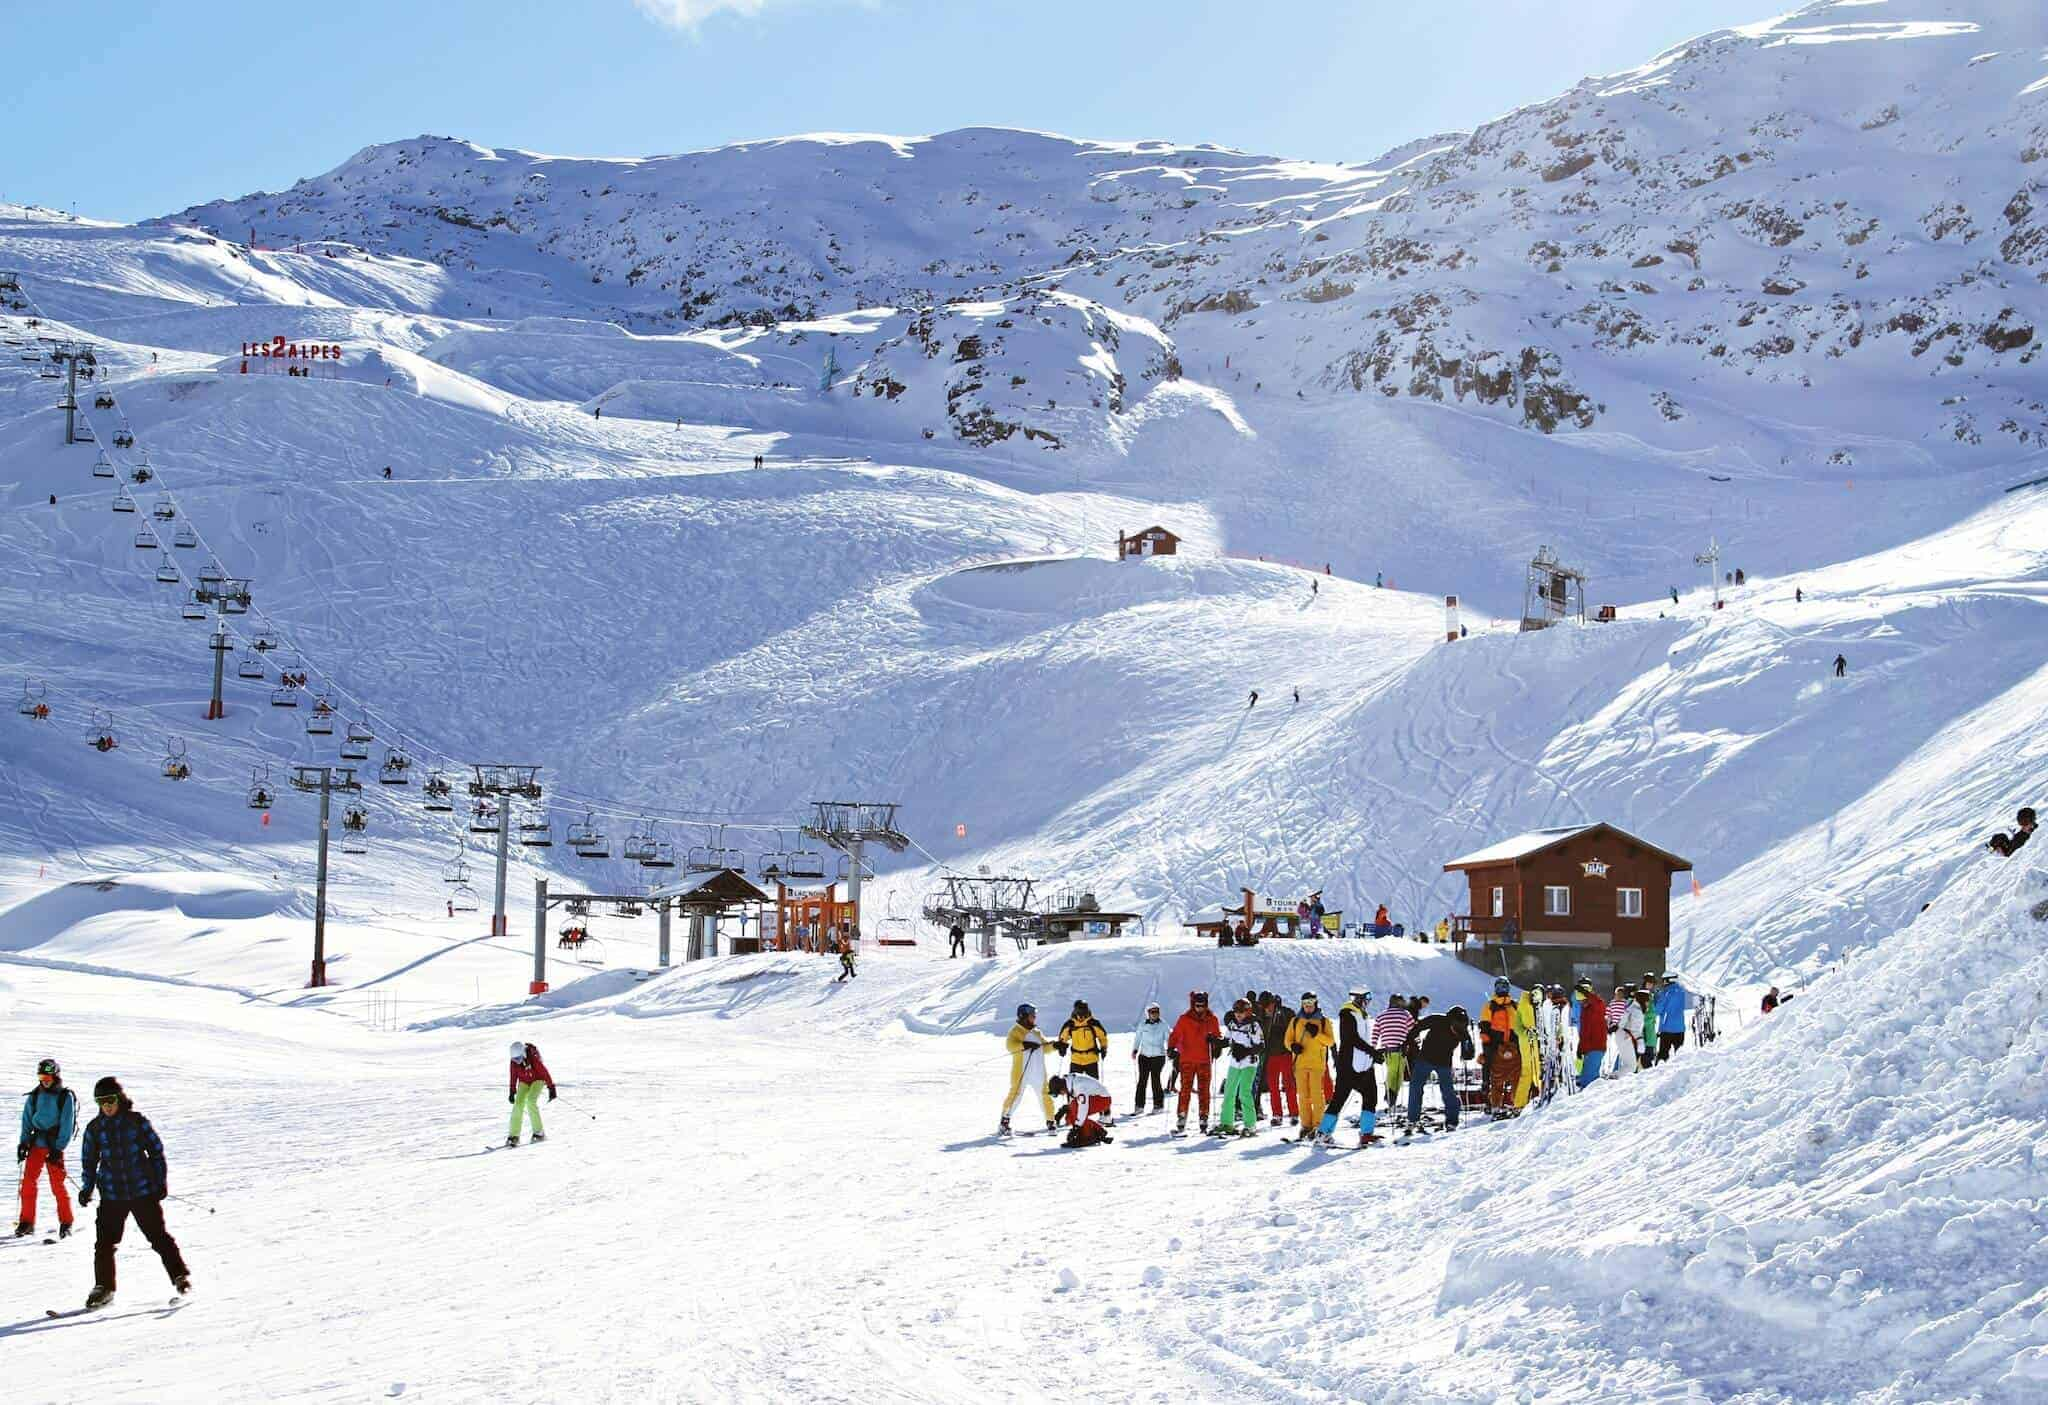 Mountain-Skiing | Pack for a Family Skiing Trip to the Alps